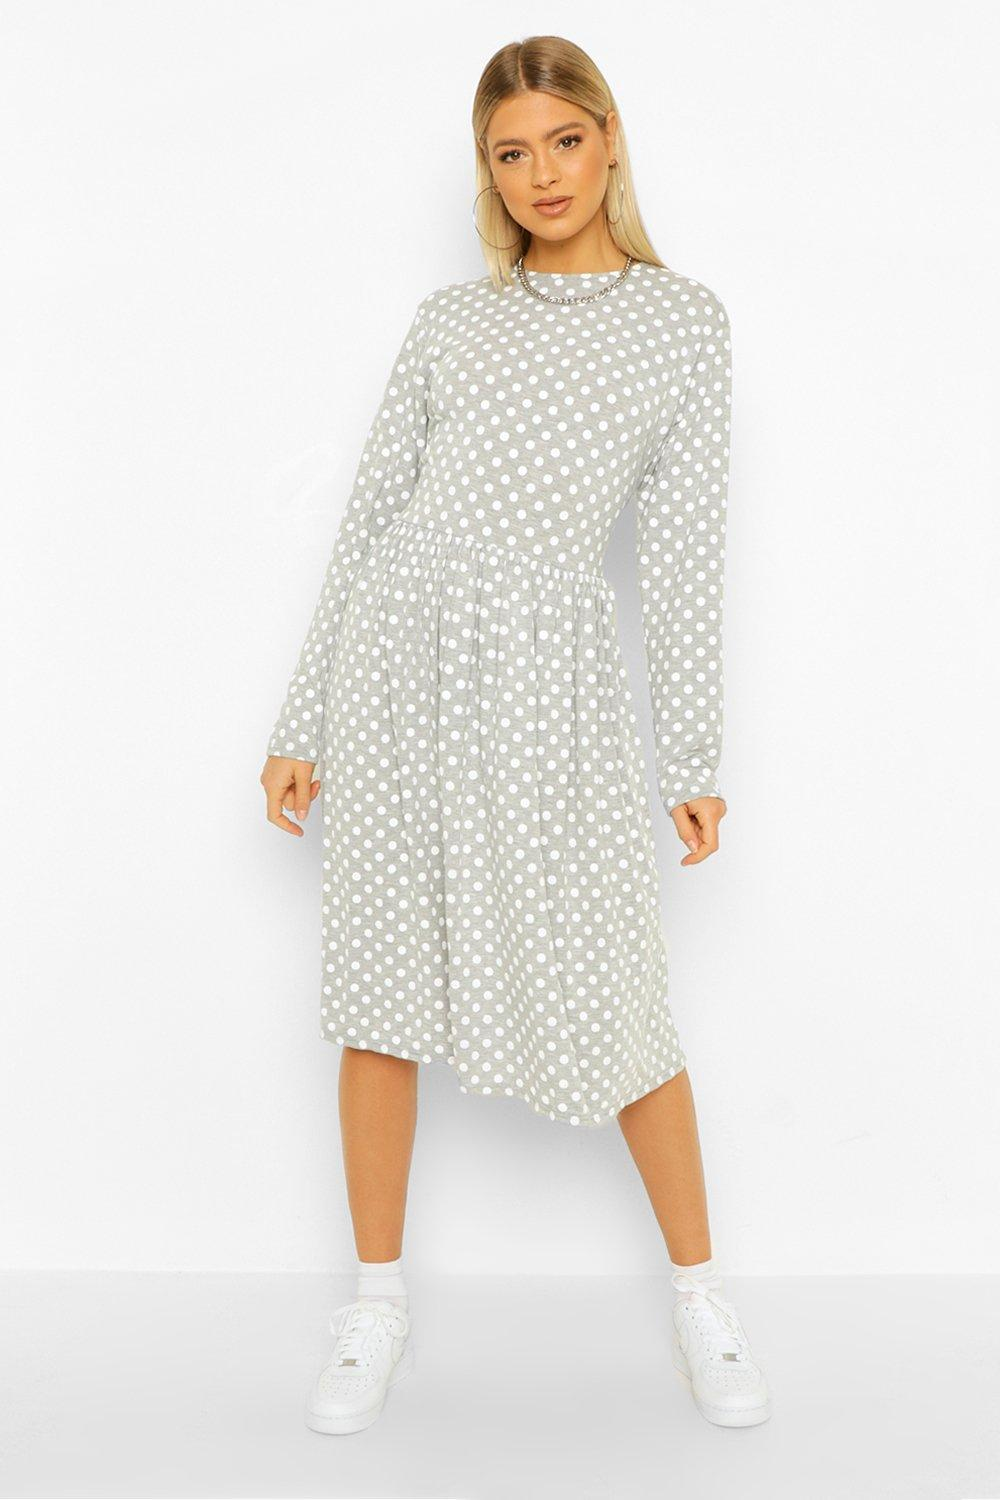 Cottagecore Dresses Aesthetic, Granny, Vintage Womens Tall Polka Dot Long Sleeve Smock Midi Dress - Grey - 14 $15.20 AT vintagedancer.com